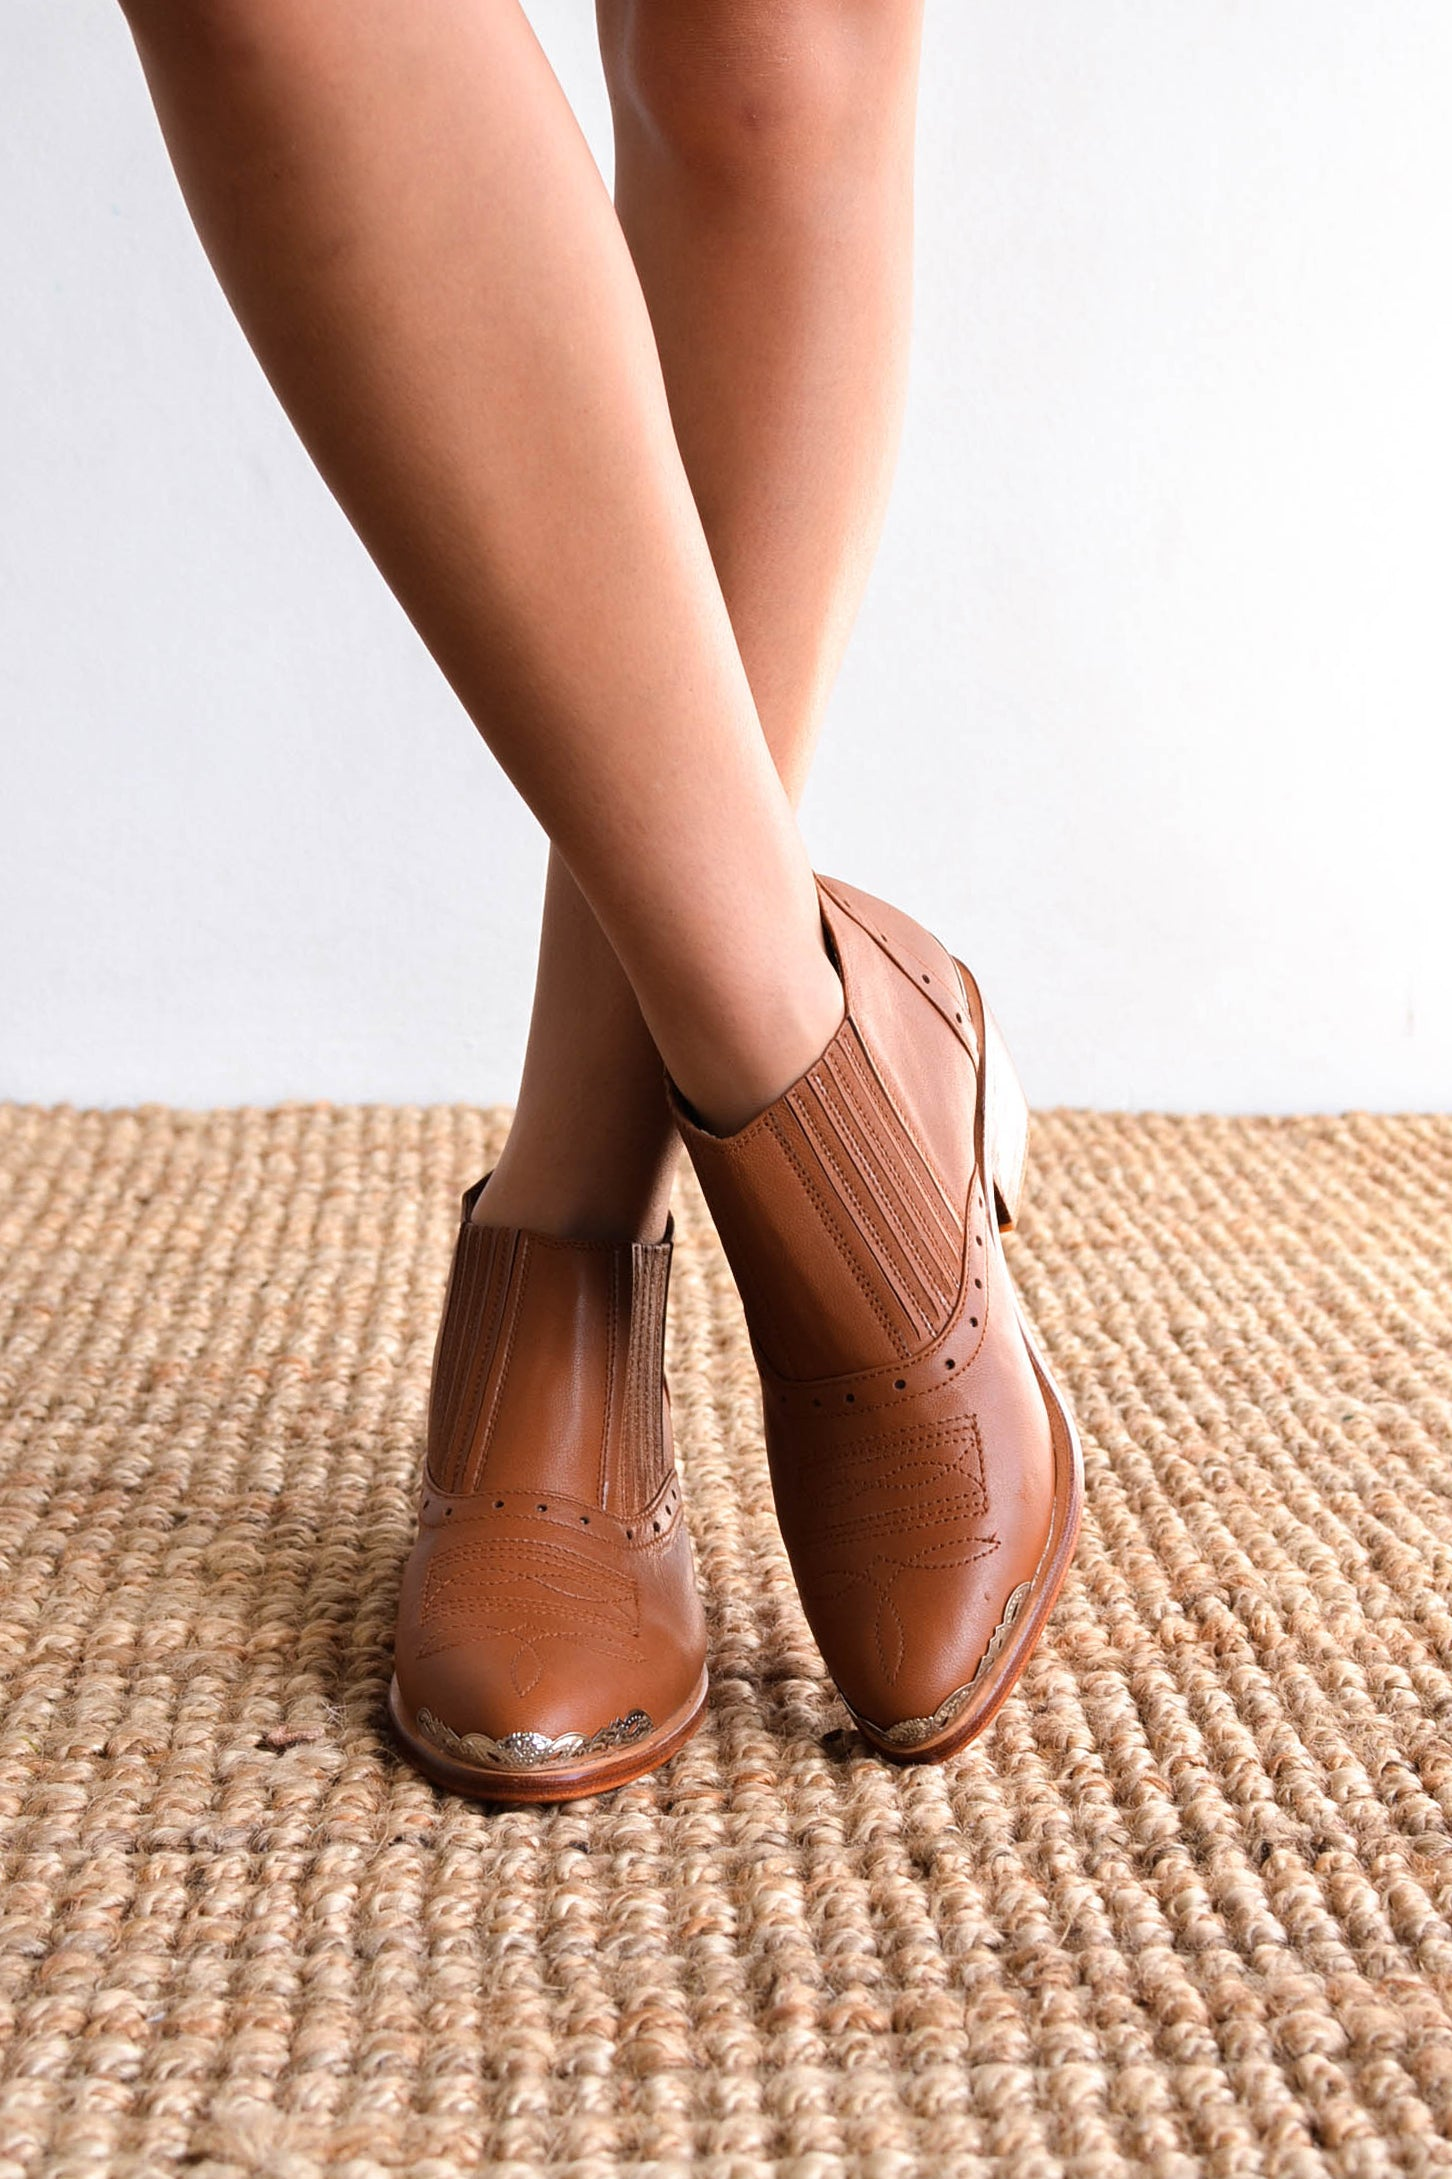 Chicko Boots - Coffee